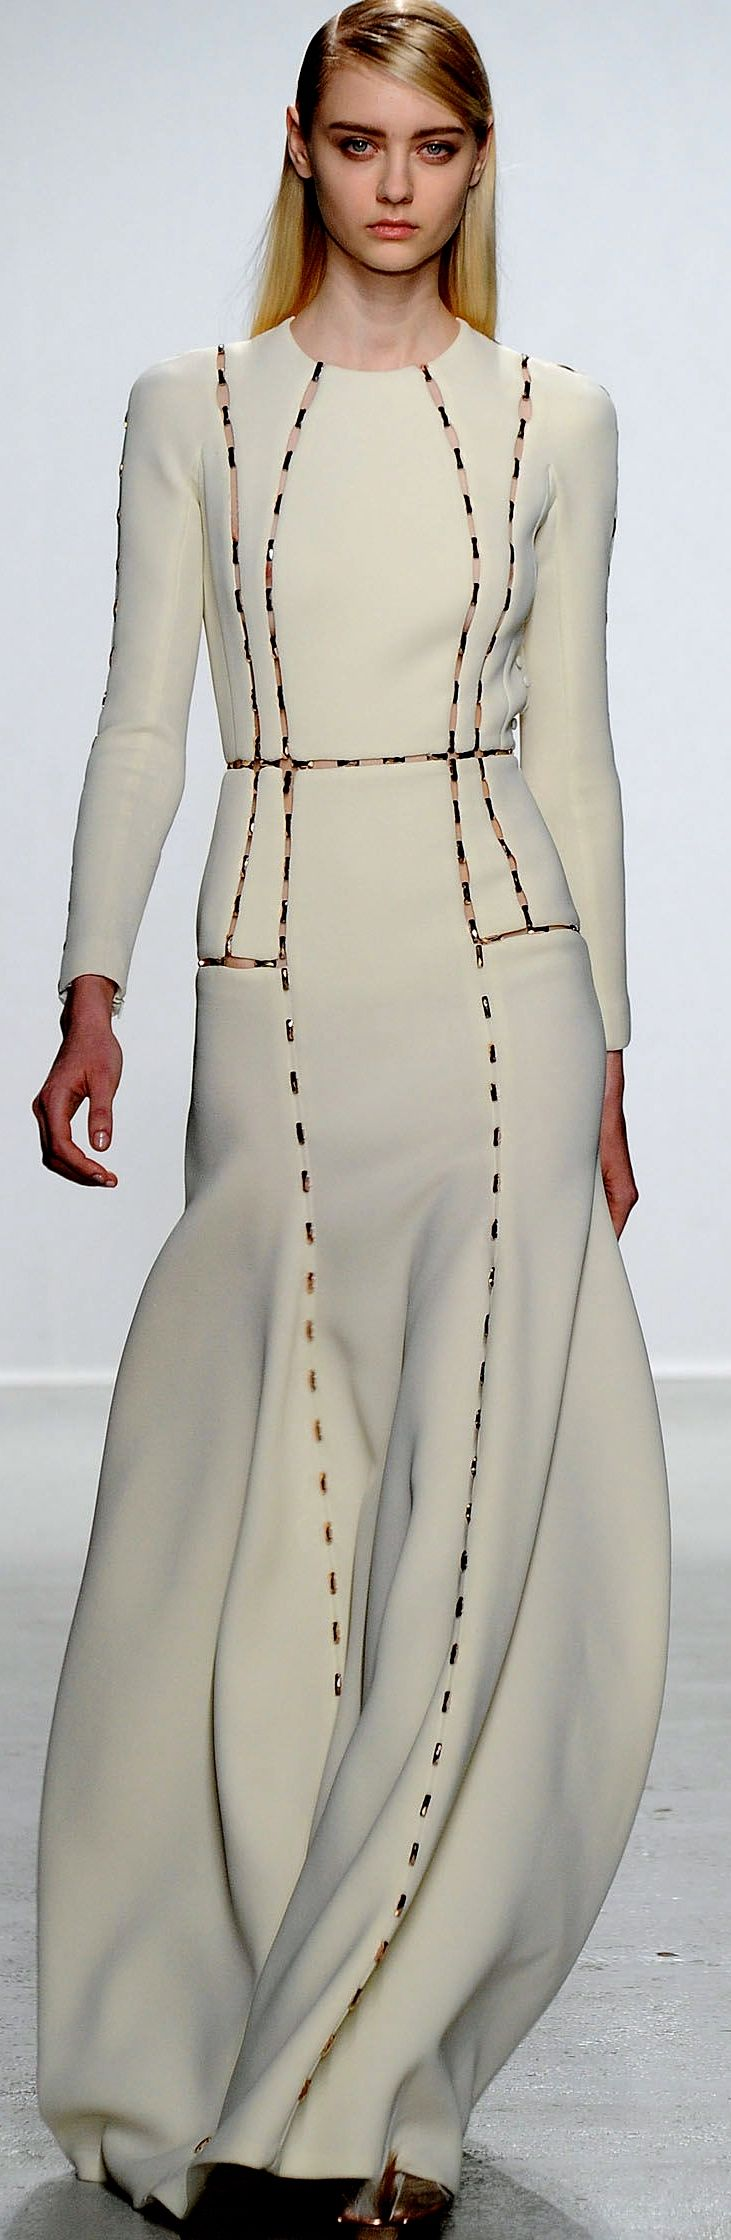 John Galliano FW RTW 2014 2015 white dress with visible decorative stitches dotted lines, looks like pattern pieces or paper drawing